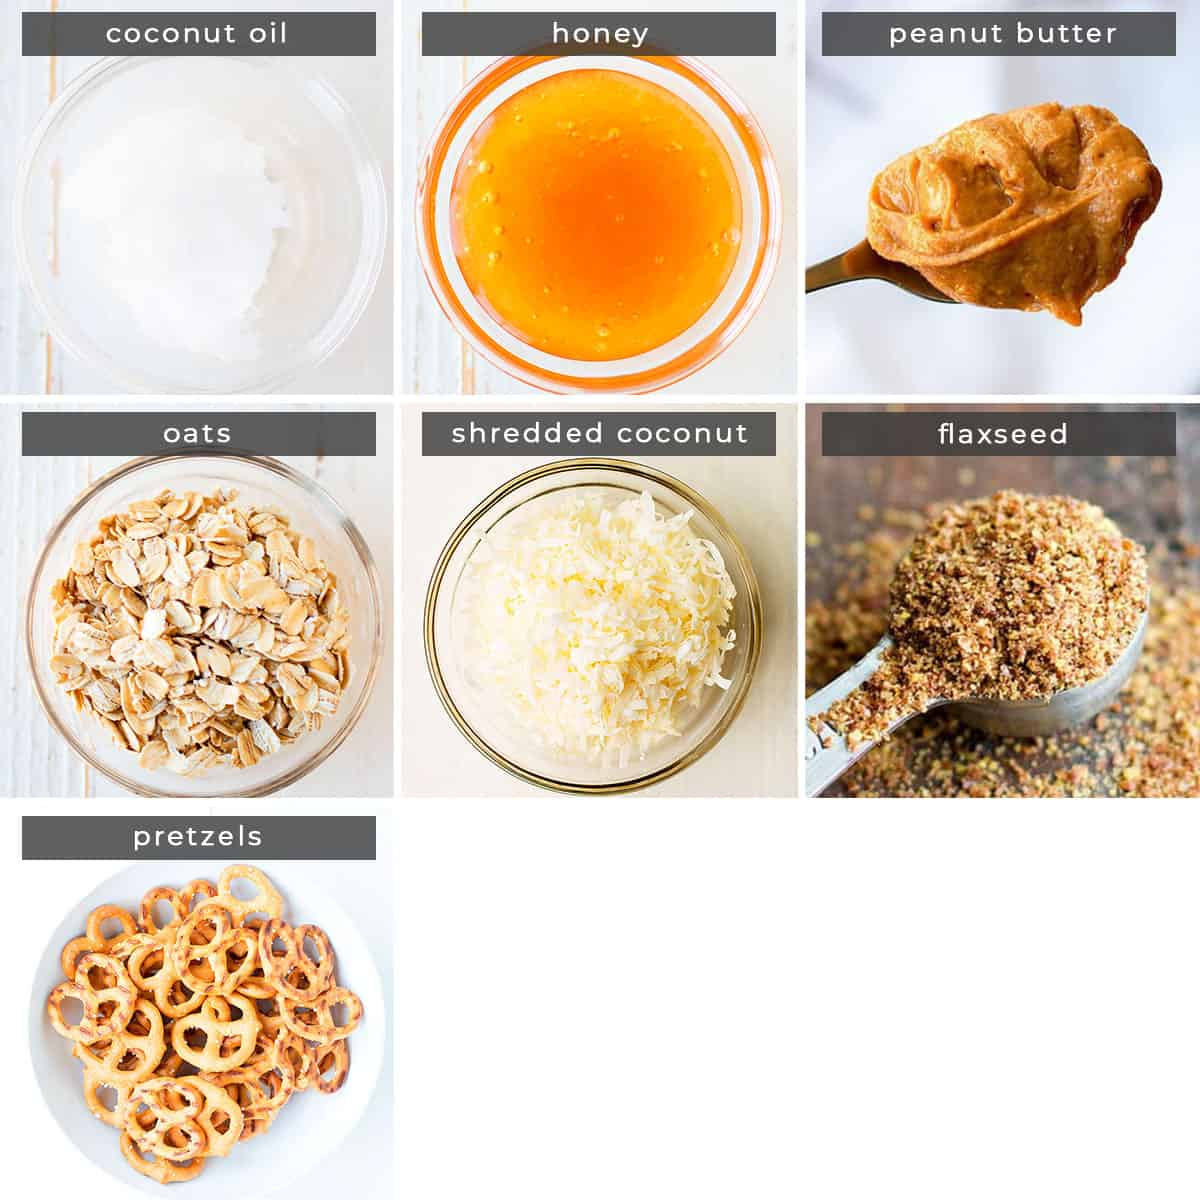 Image containing recipe ingredients coconut oil, honey, peanut butter, oats, shredded coconut, flaxseed, and pretzels.